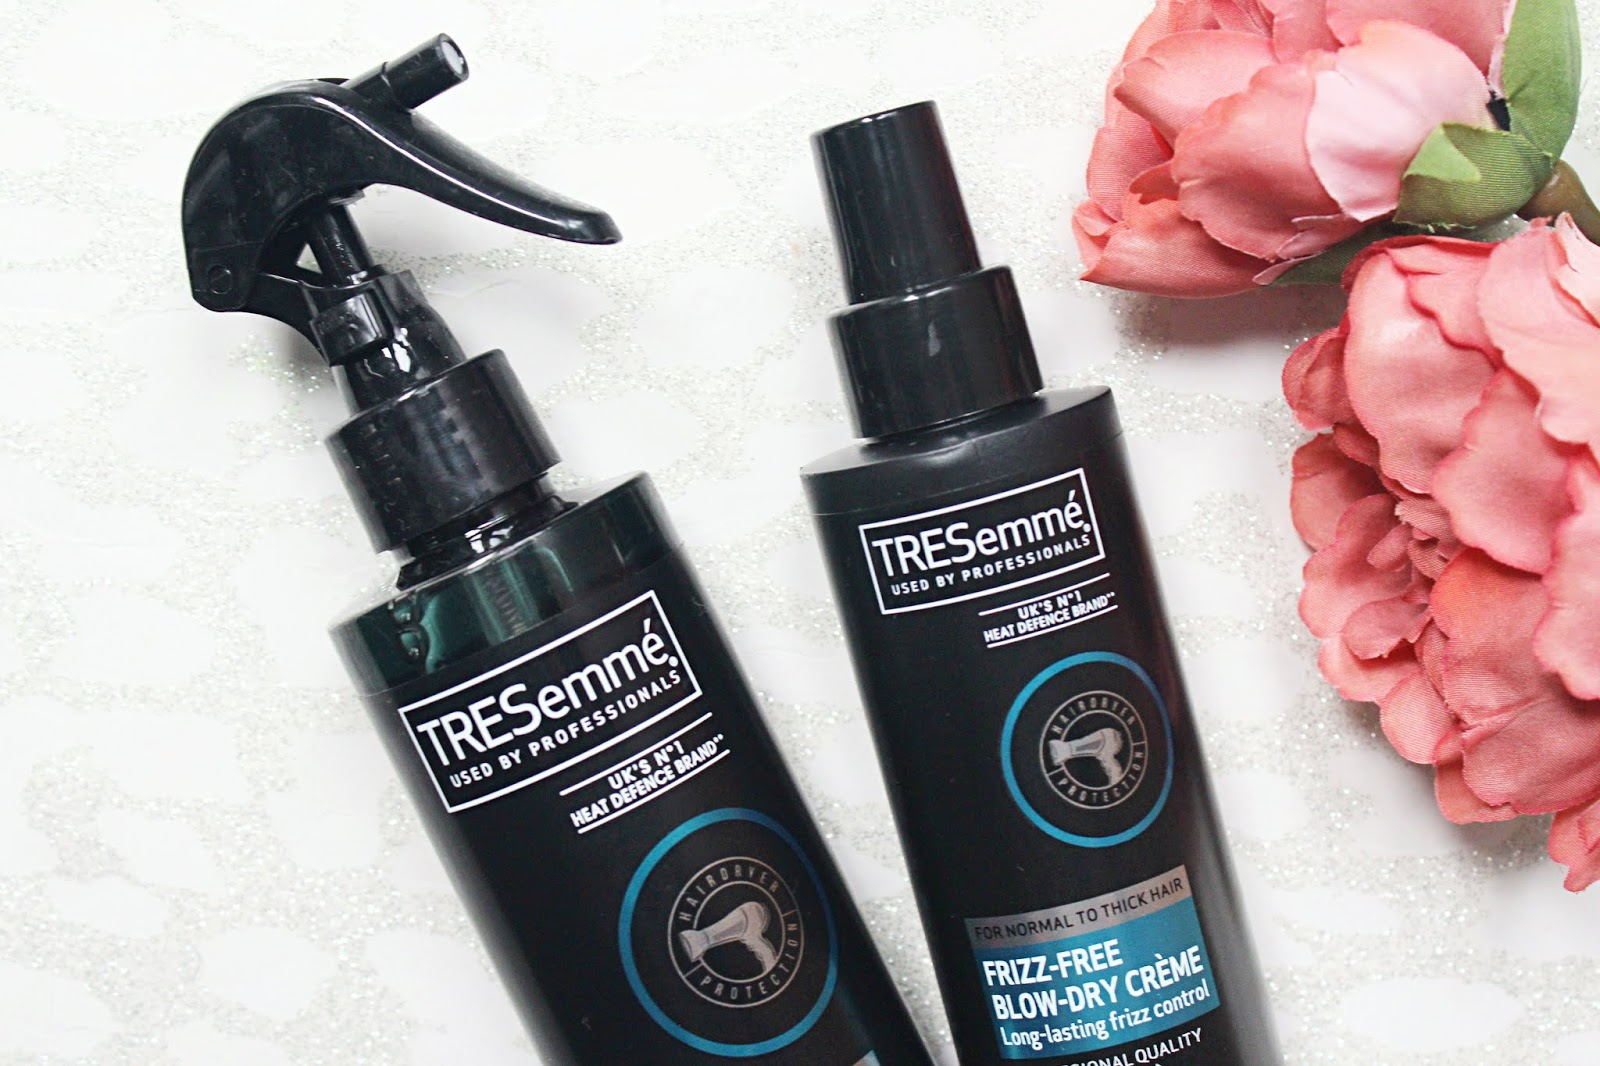 TRESemme Blow Drying Products